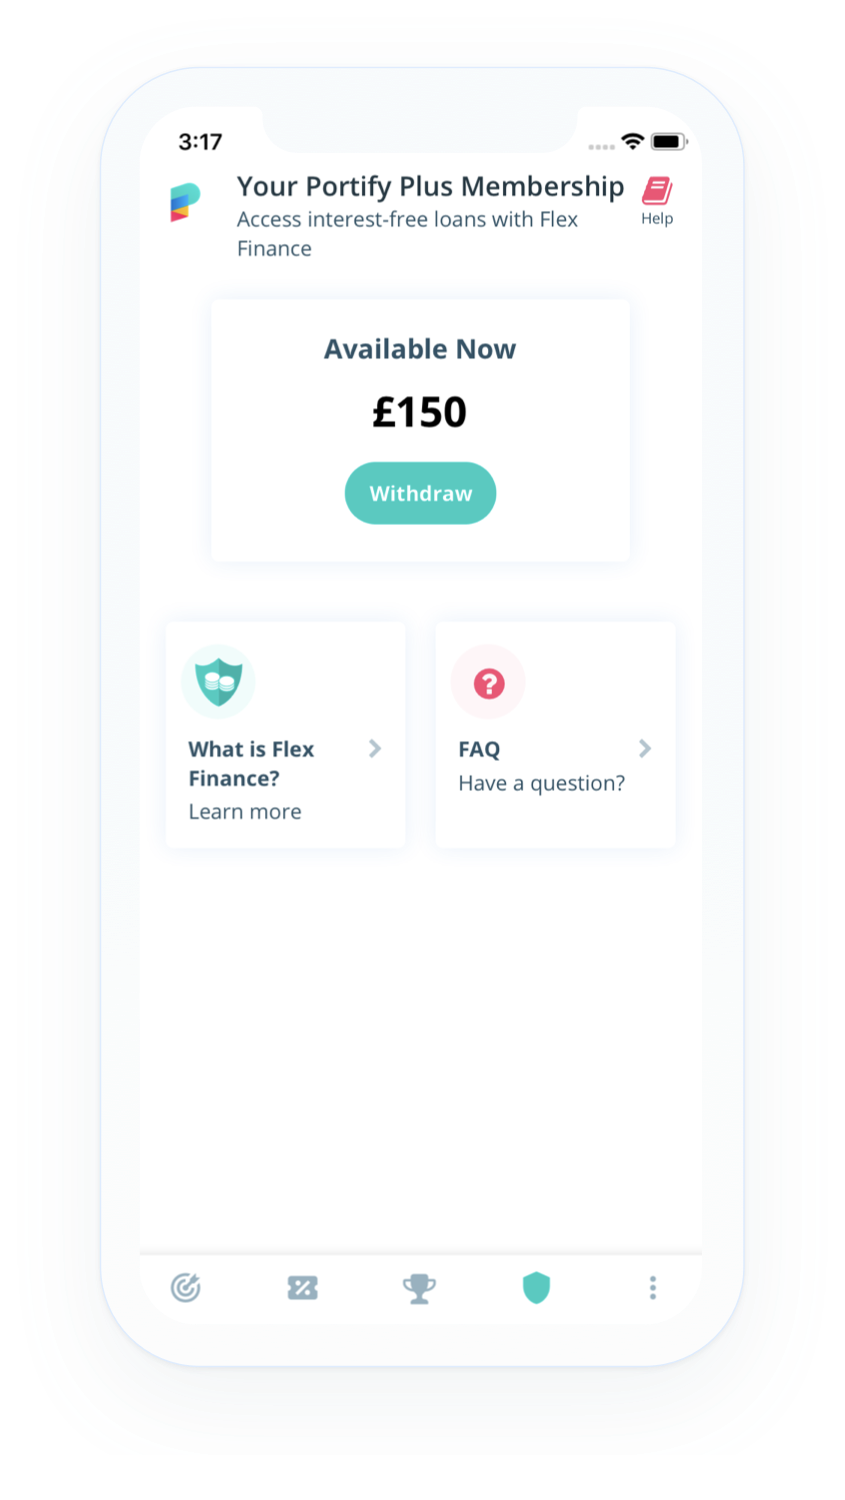 Screenshot of Flex Finance interest-free loans homepage from credit builder app Portify